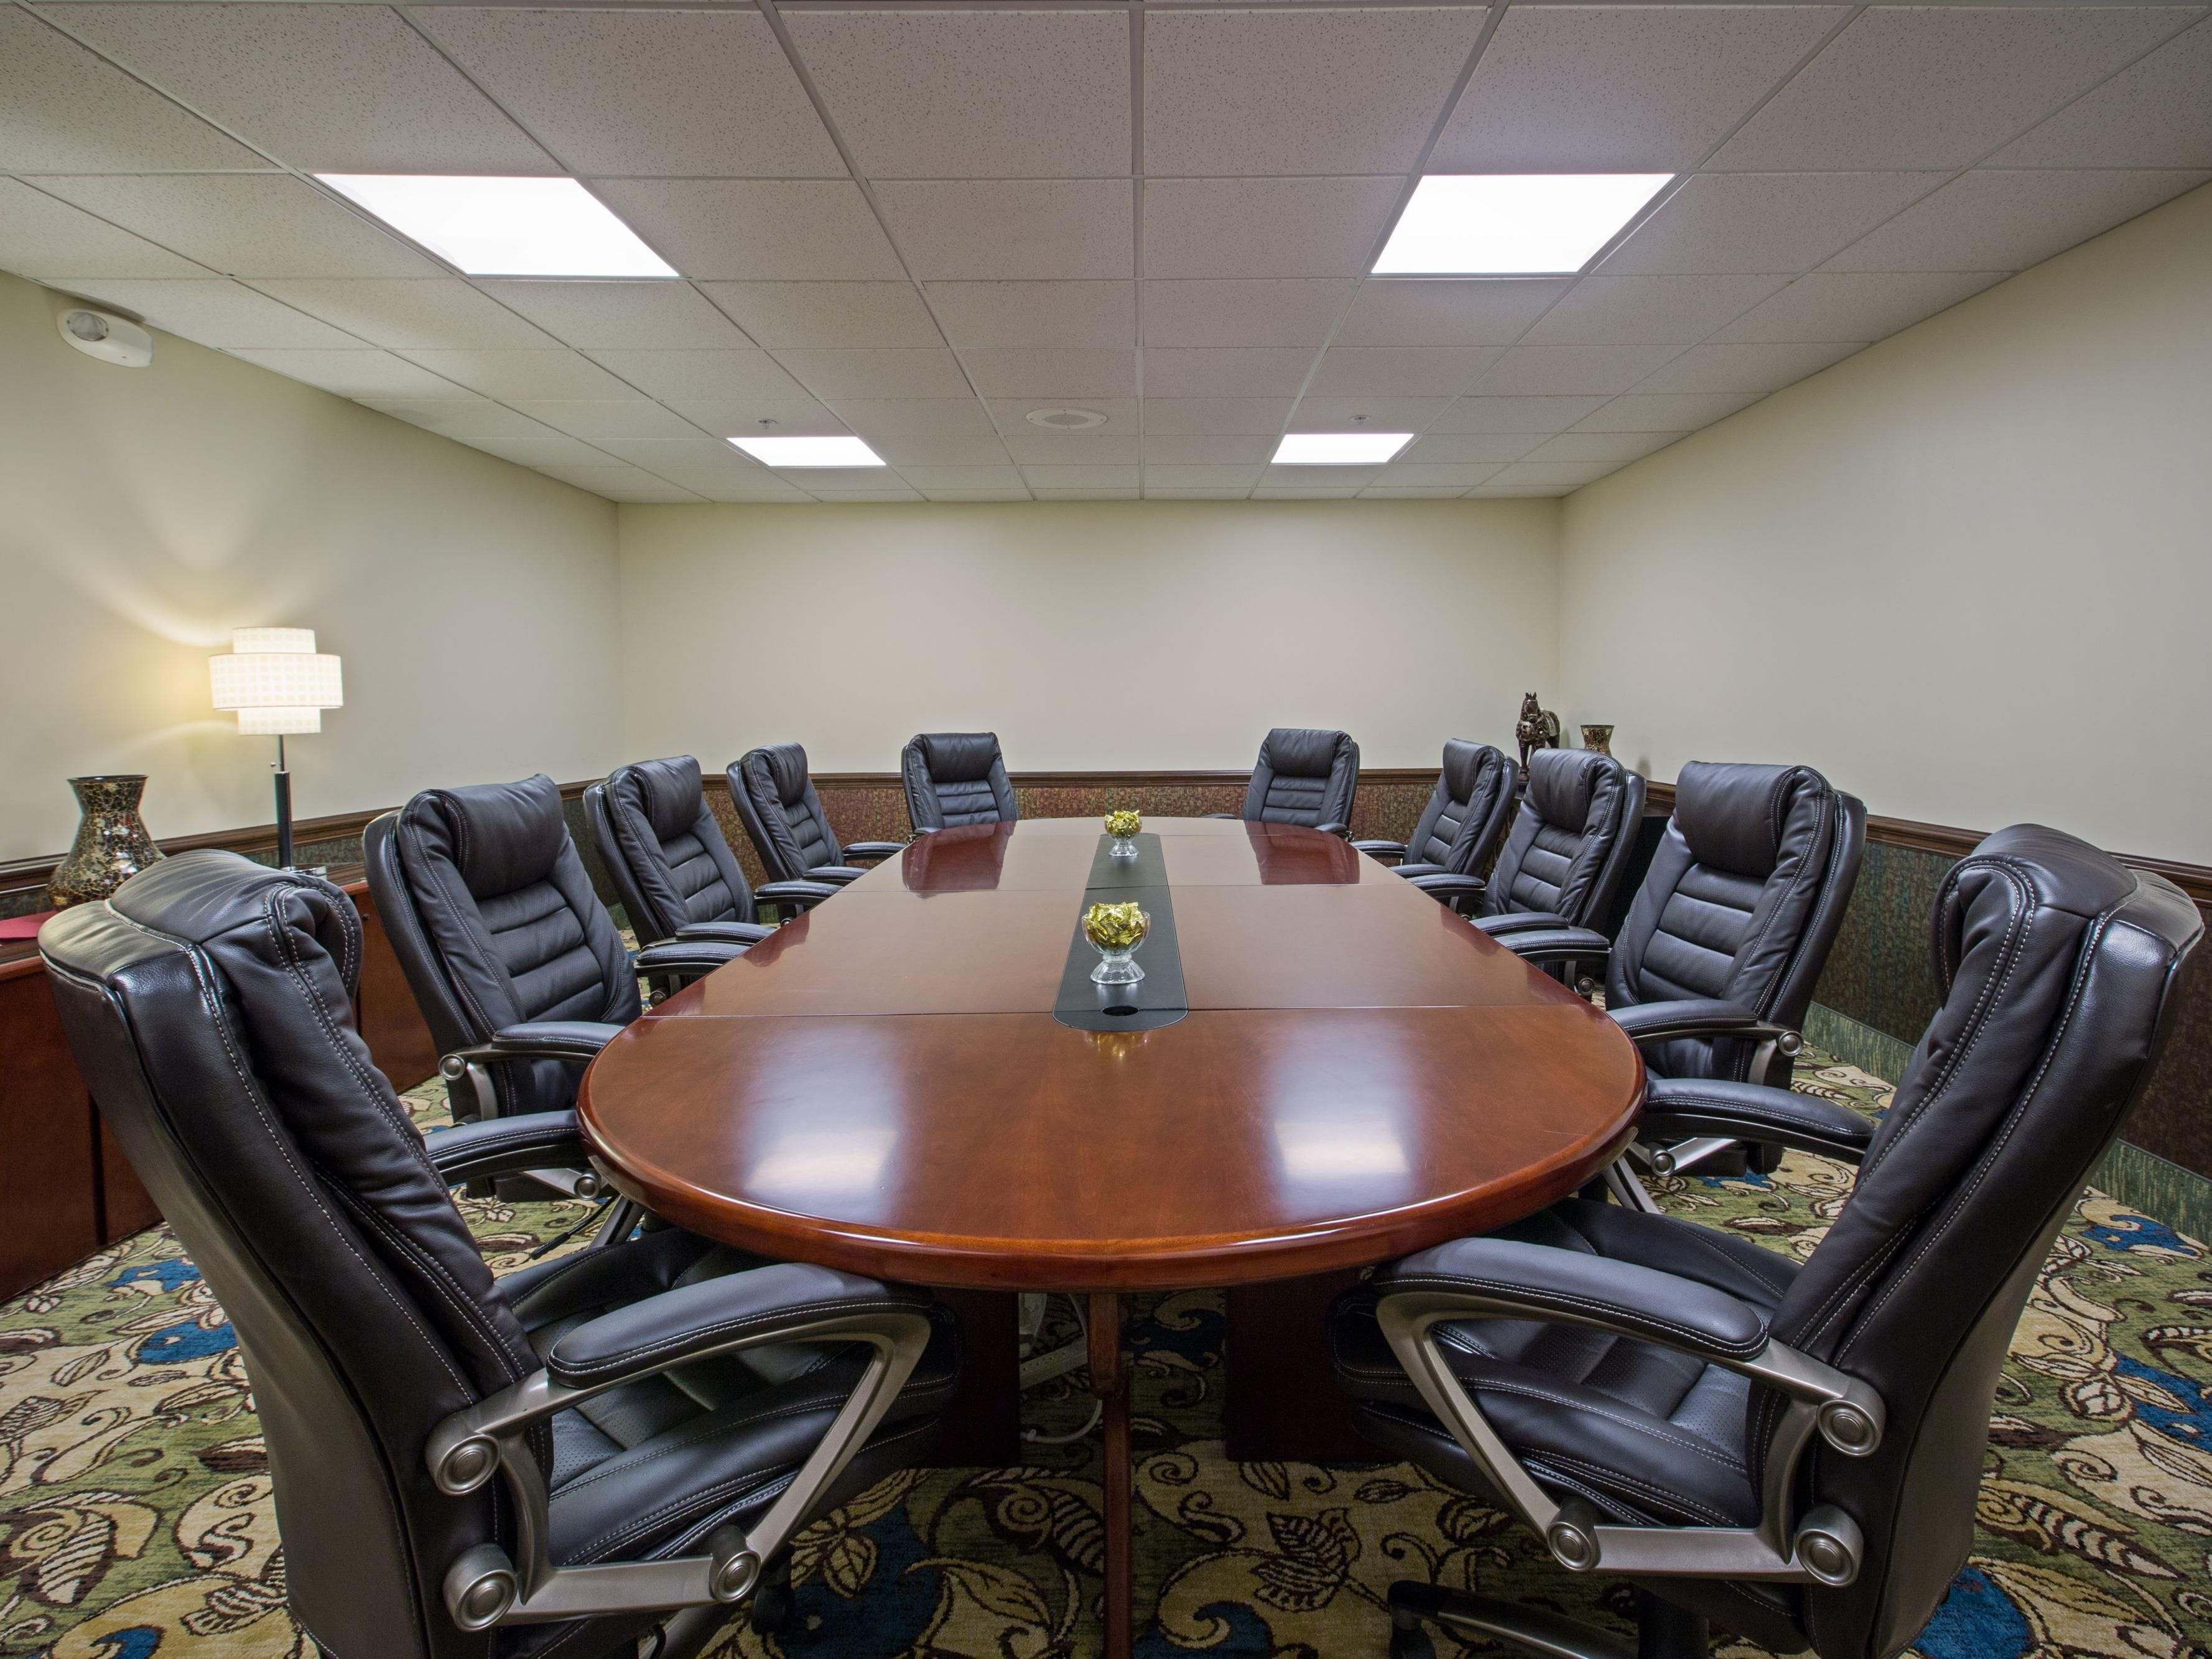 Our Boardroom provides an ideal meeting space